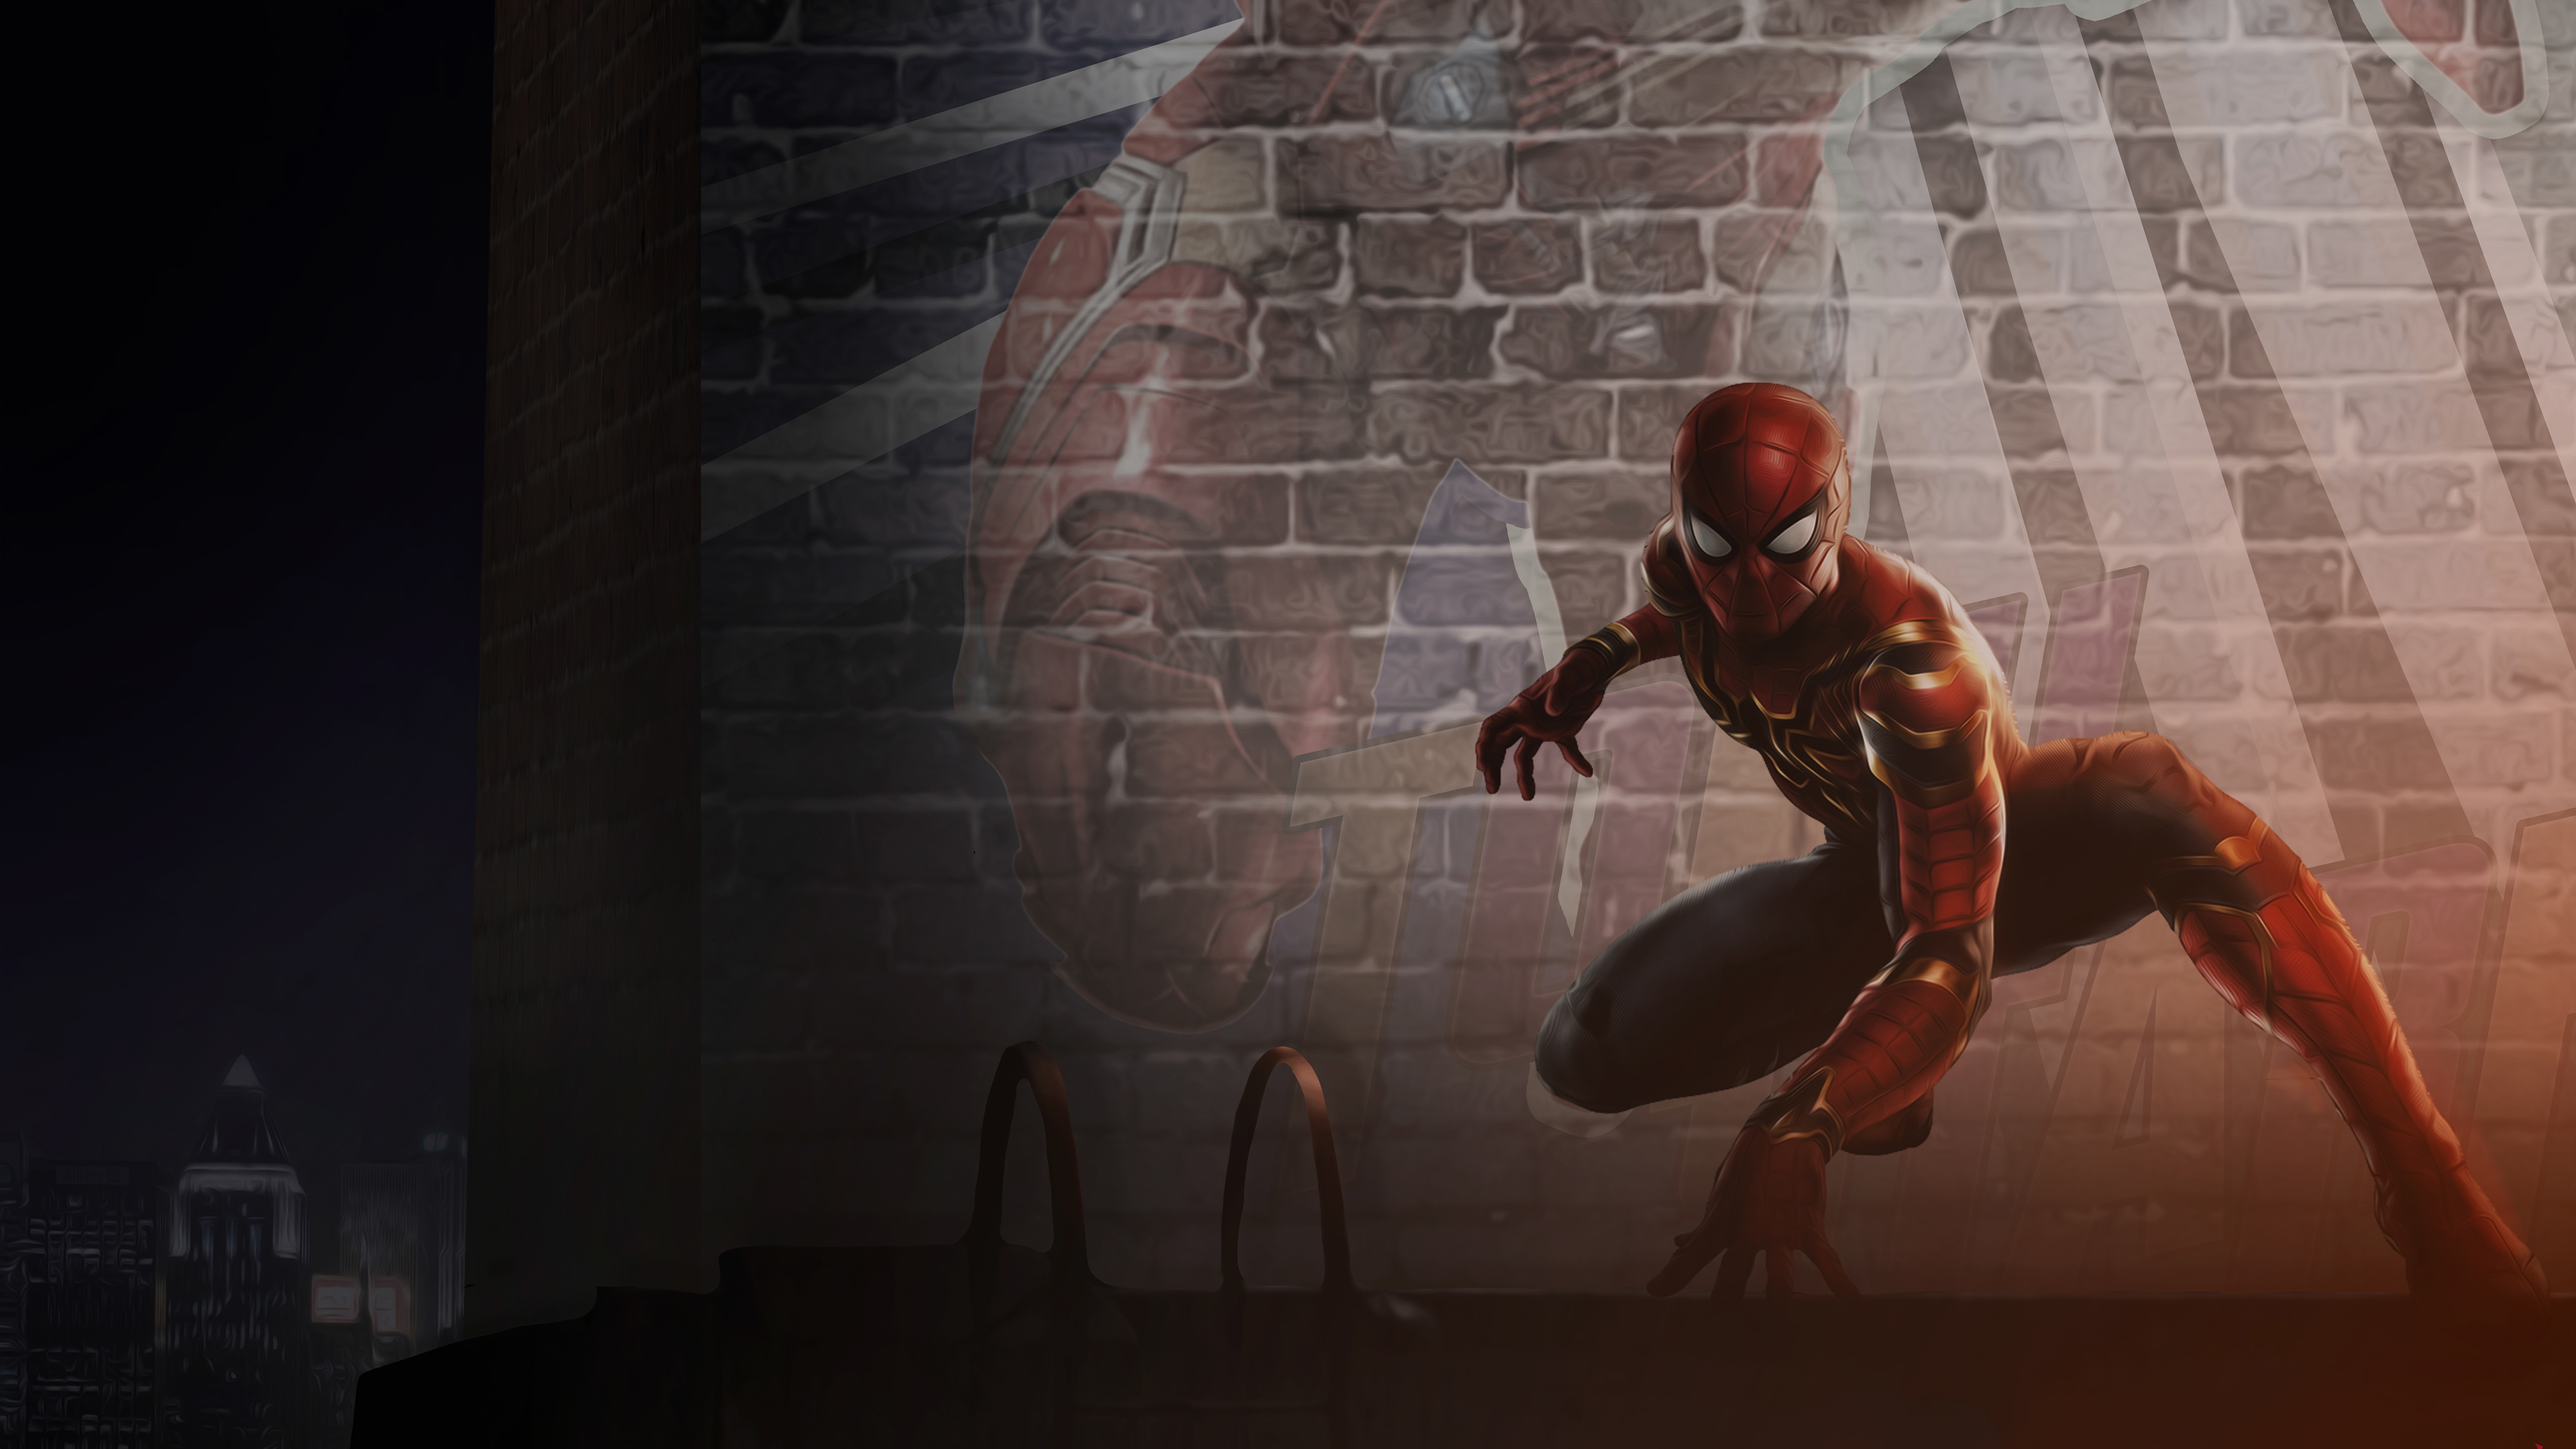 Wallpaper 4k Spider Man Far From Home 2019 4k 2019 Movies